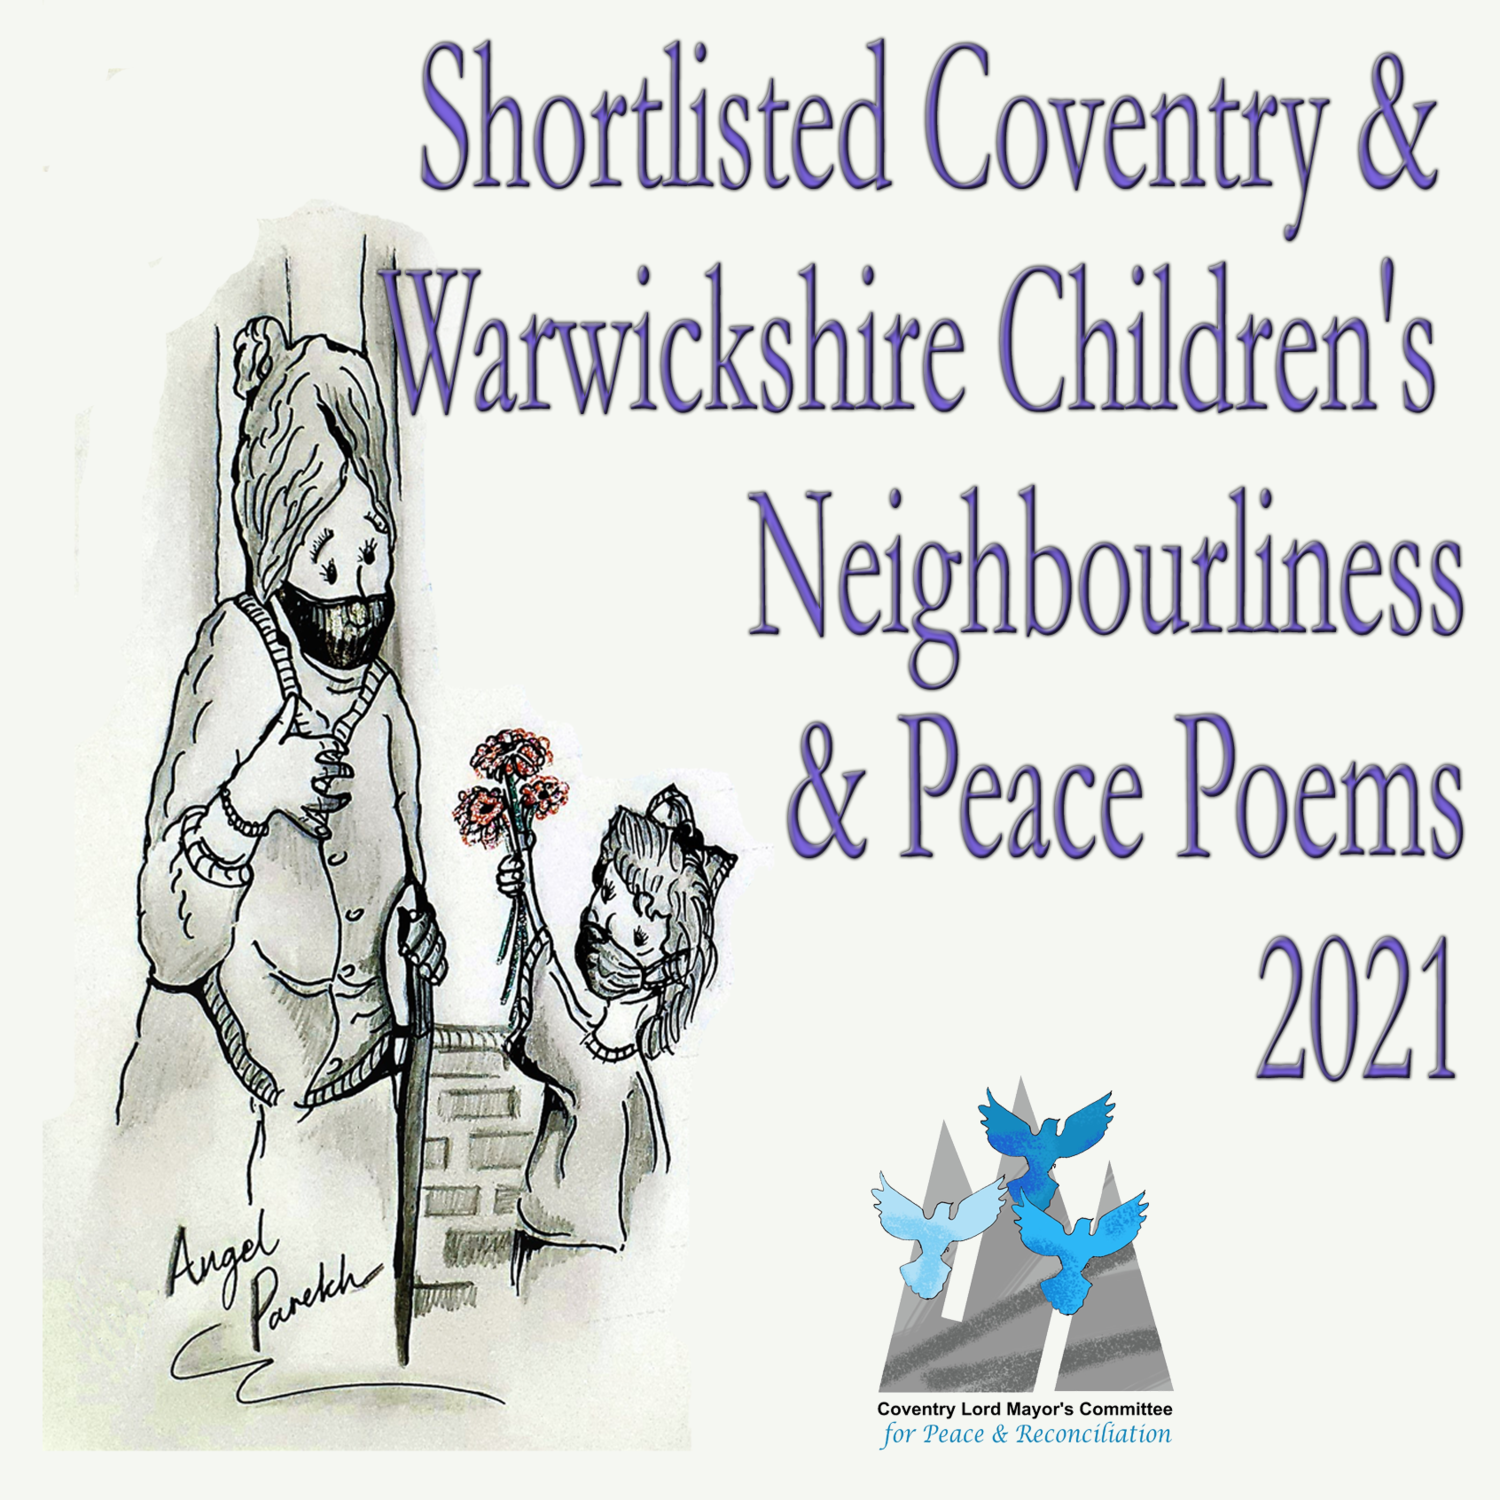 Ebook Shortlisted Coventry & Warwickshire Children's Neighbourliness & Peace Poems 2021 (PDF)